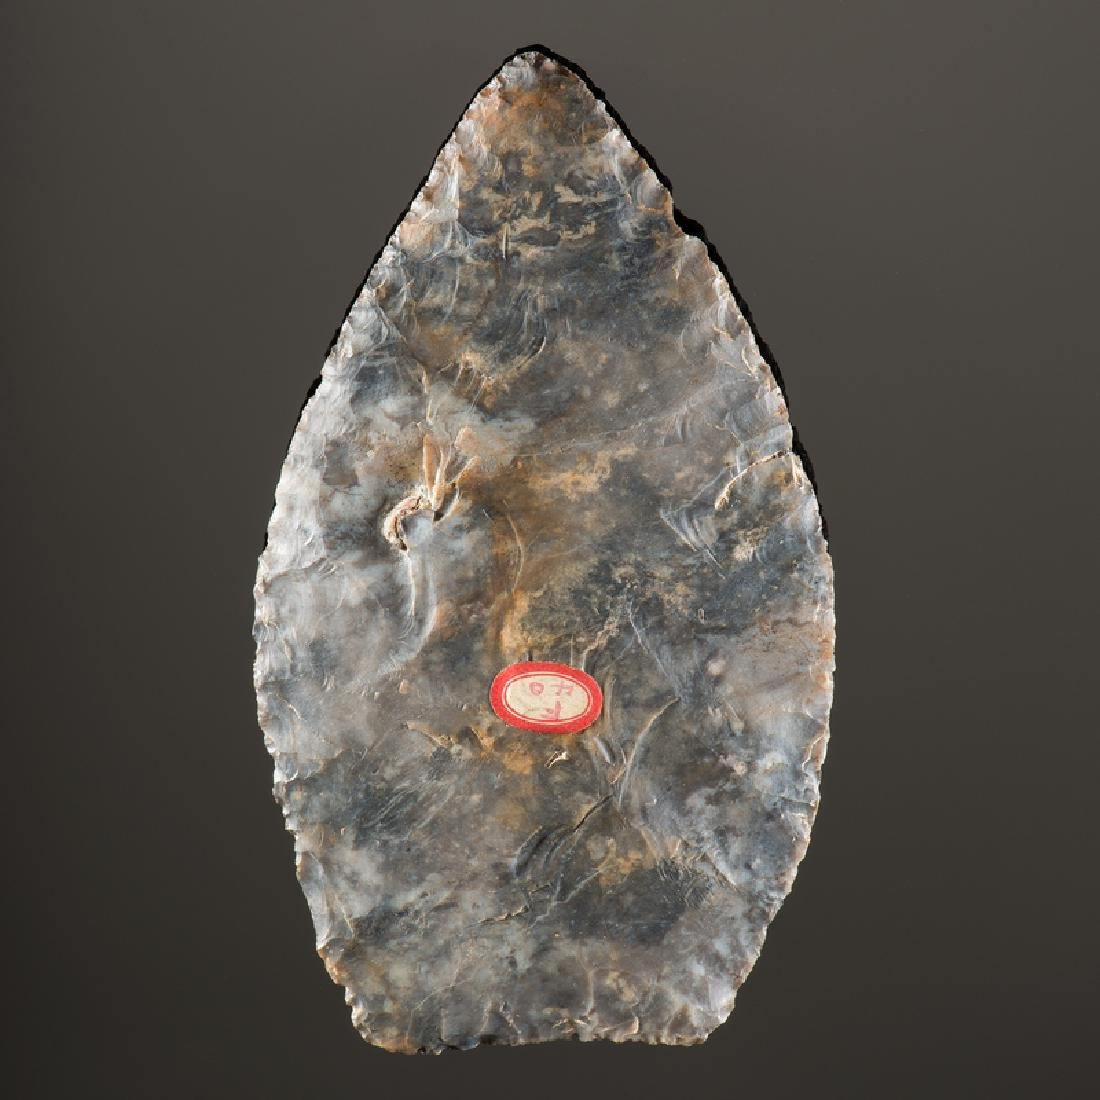 A Coshocton Flint Blade, From the Collection of Jan